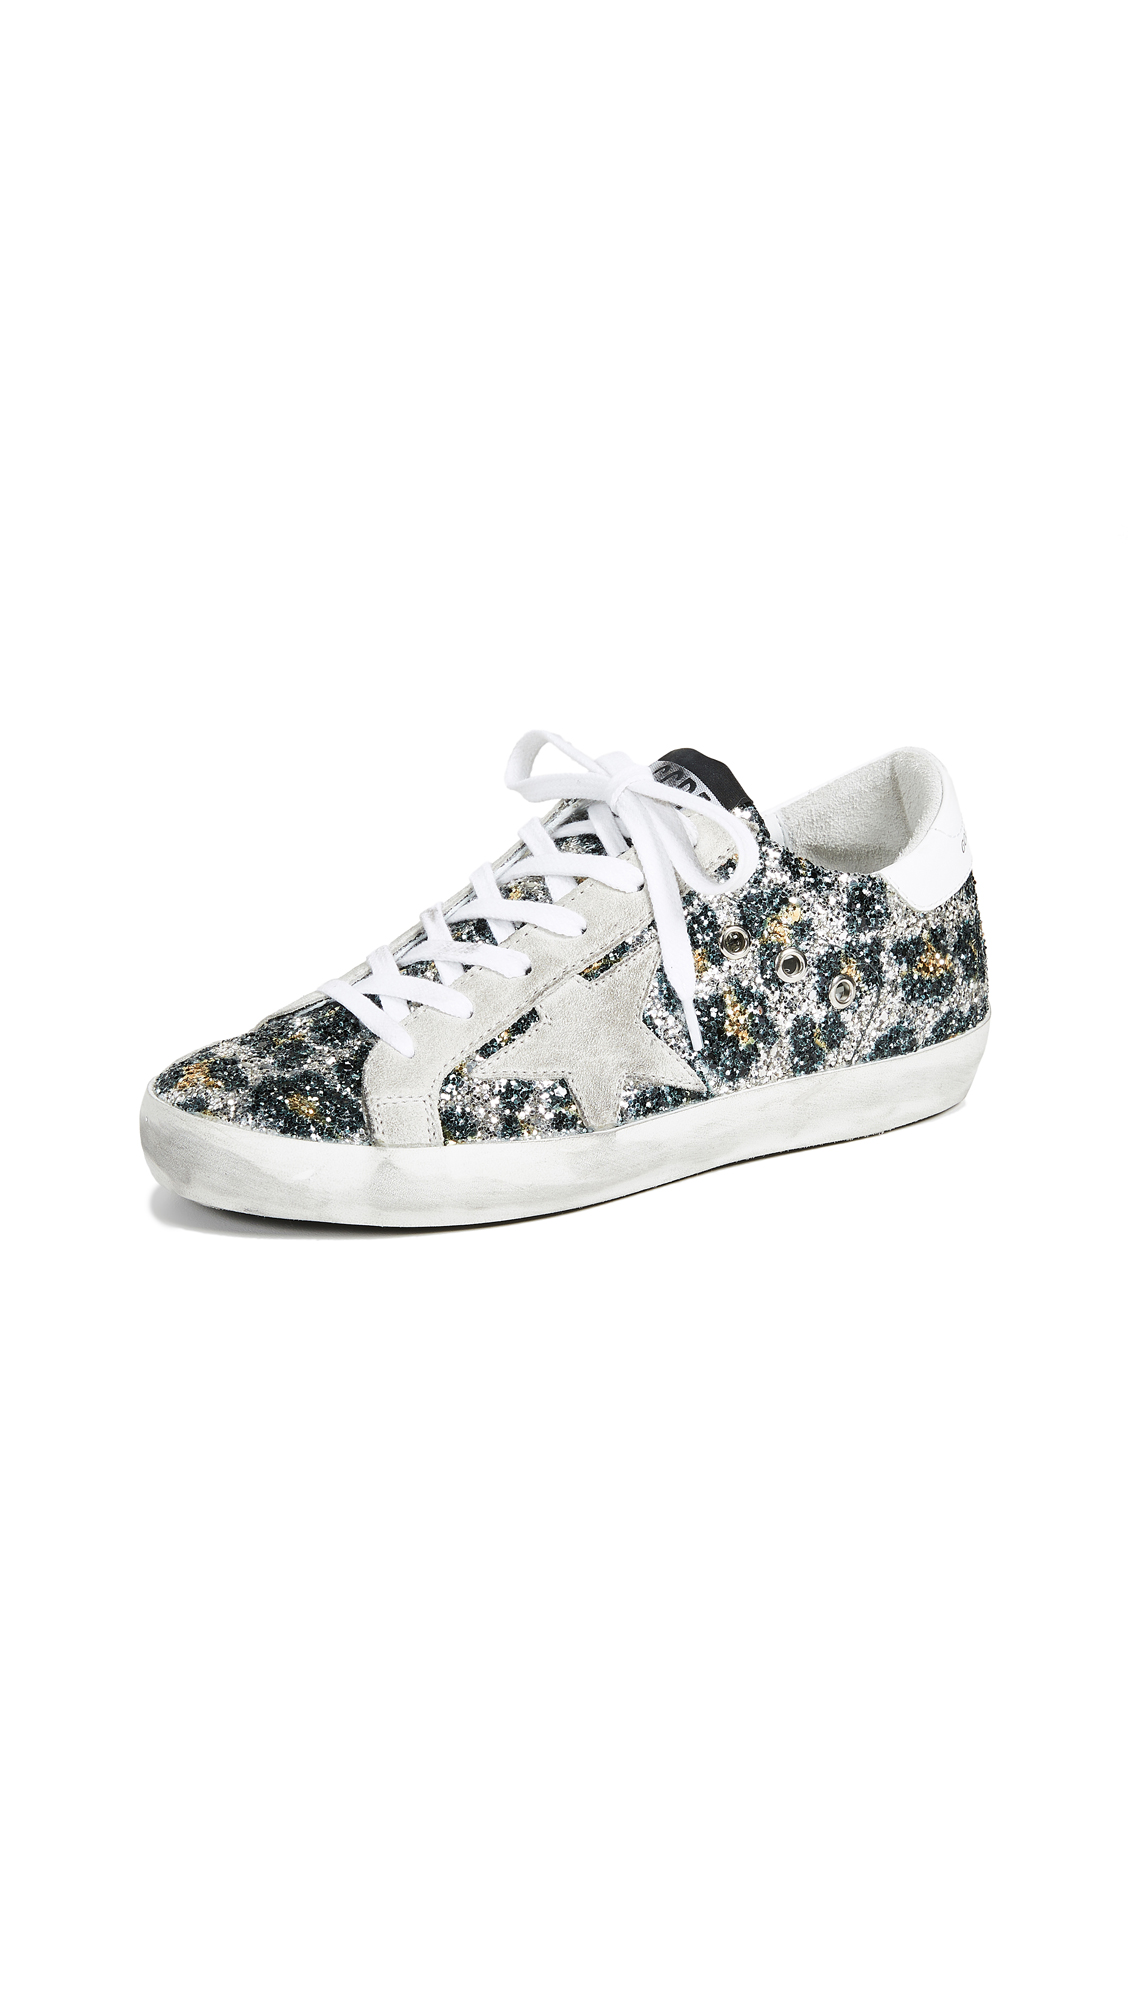 Golden Goose Superstar Sneakers - Leopard/Ice